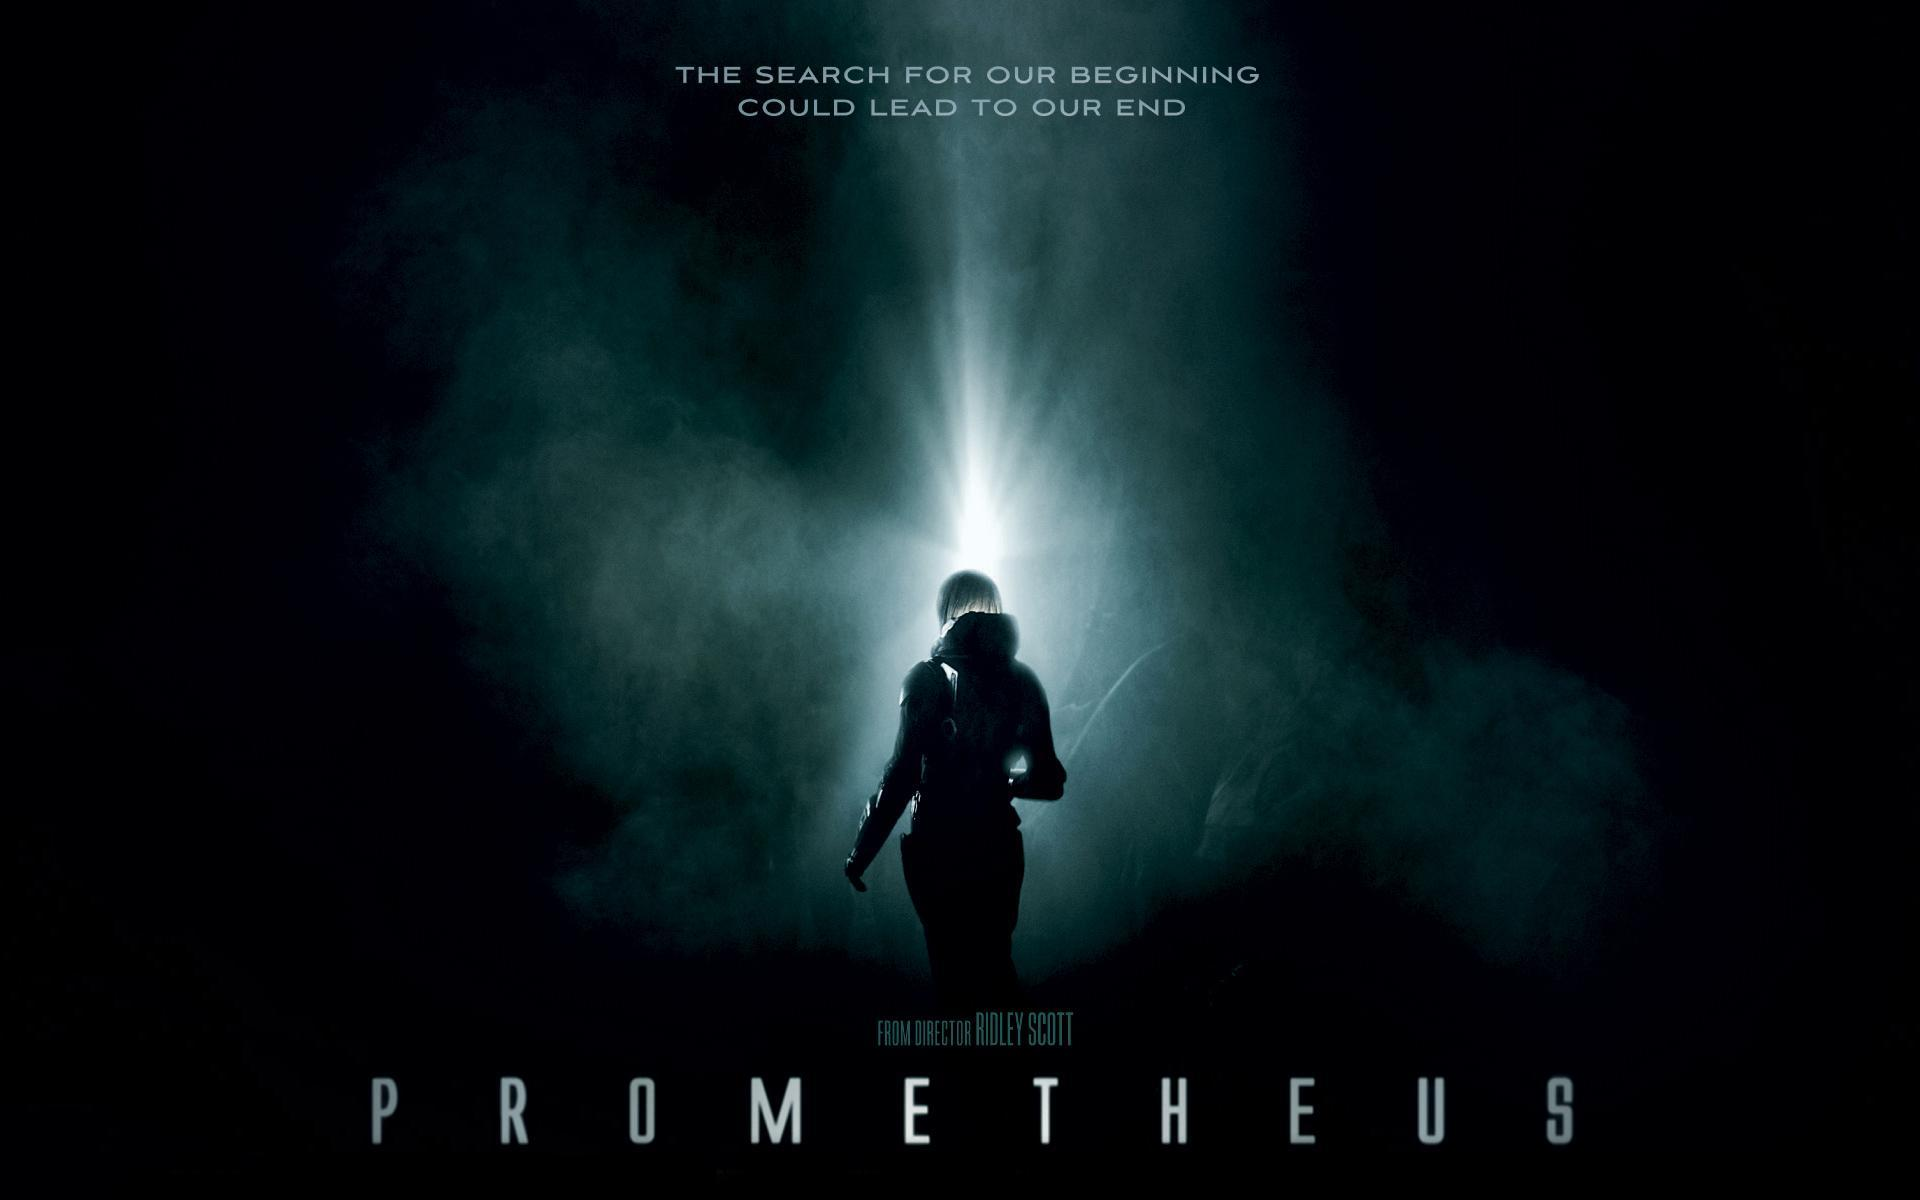 Are there any other movies like Prometheus?